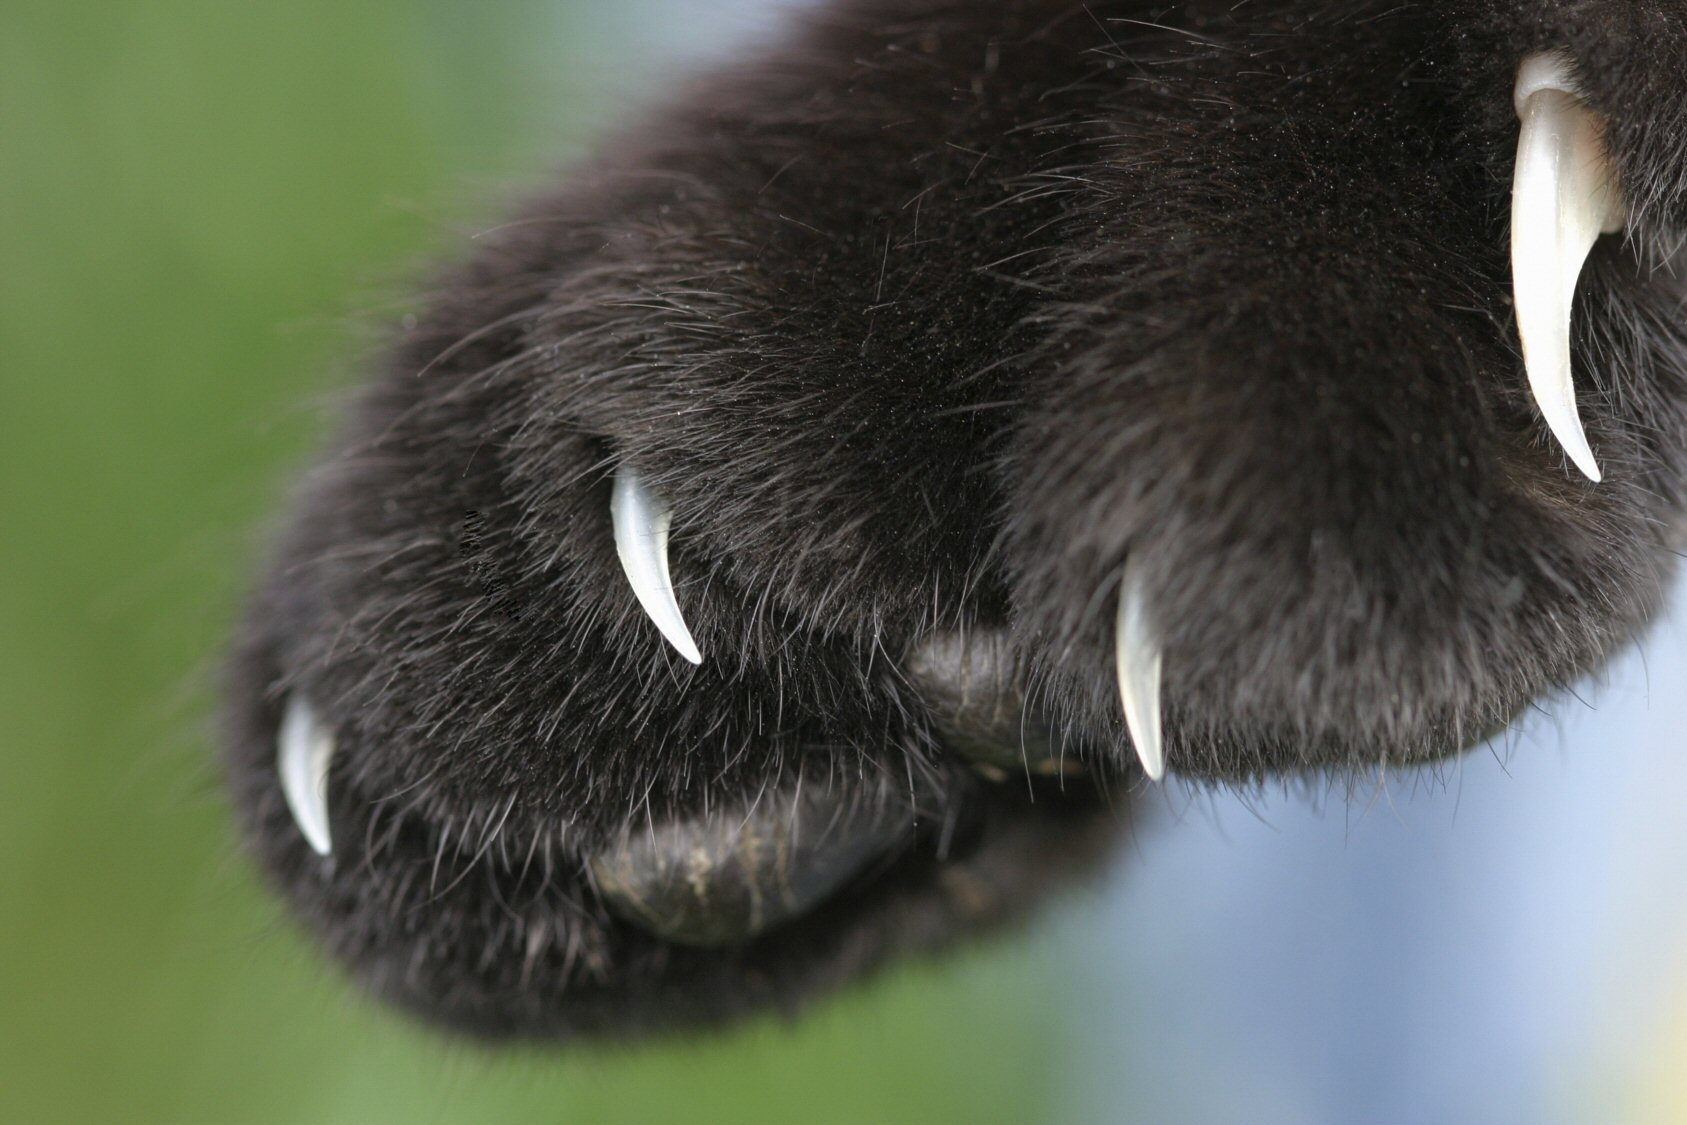 Hepatitis C and cat scrathes | Worms & Germs Blog